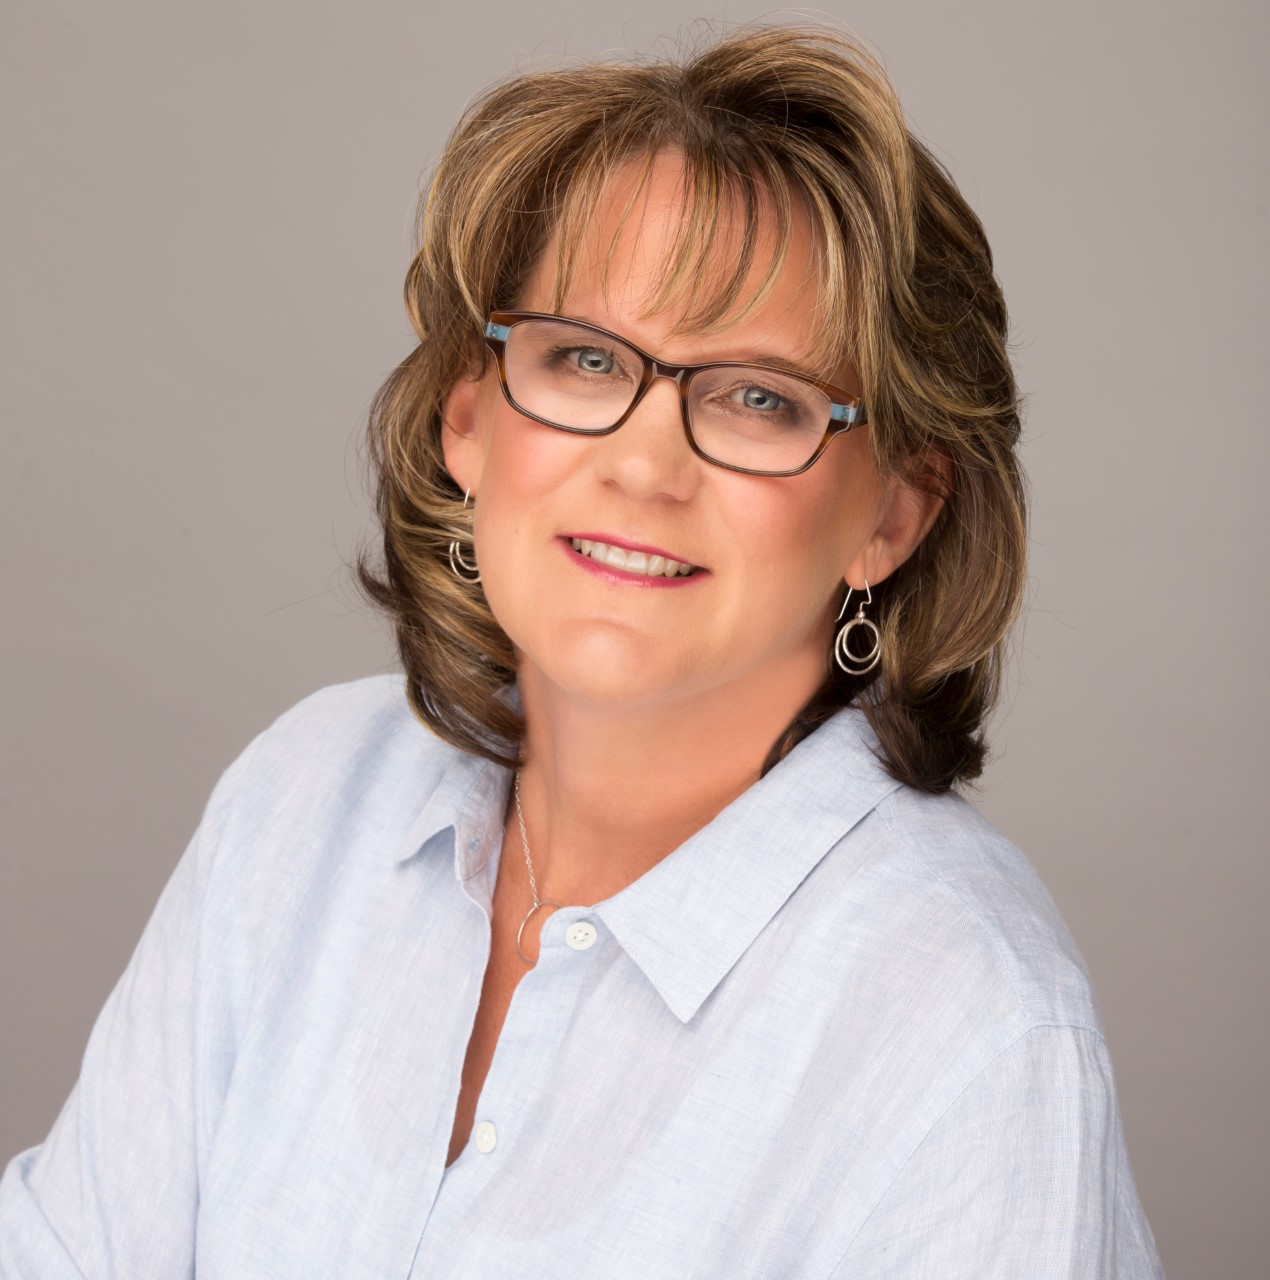 karen bruns headshot